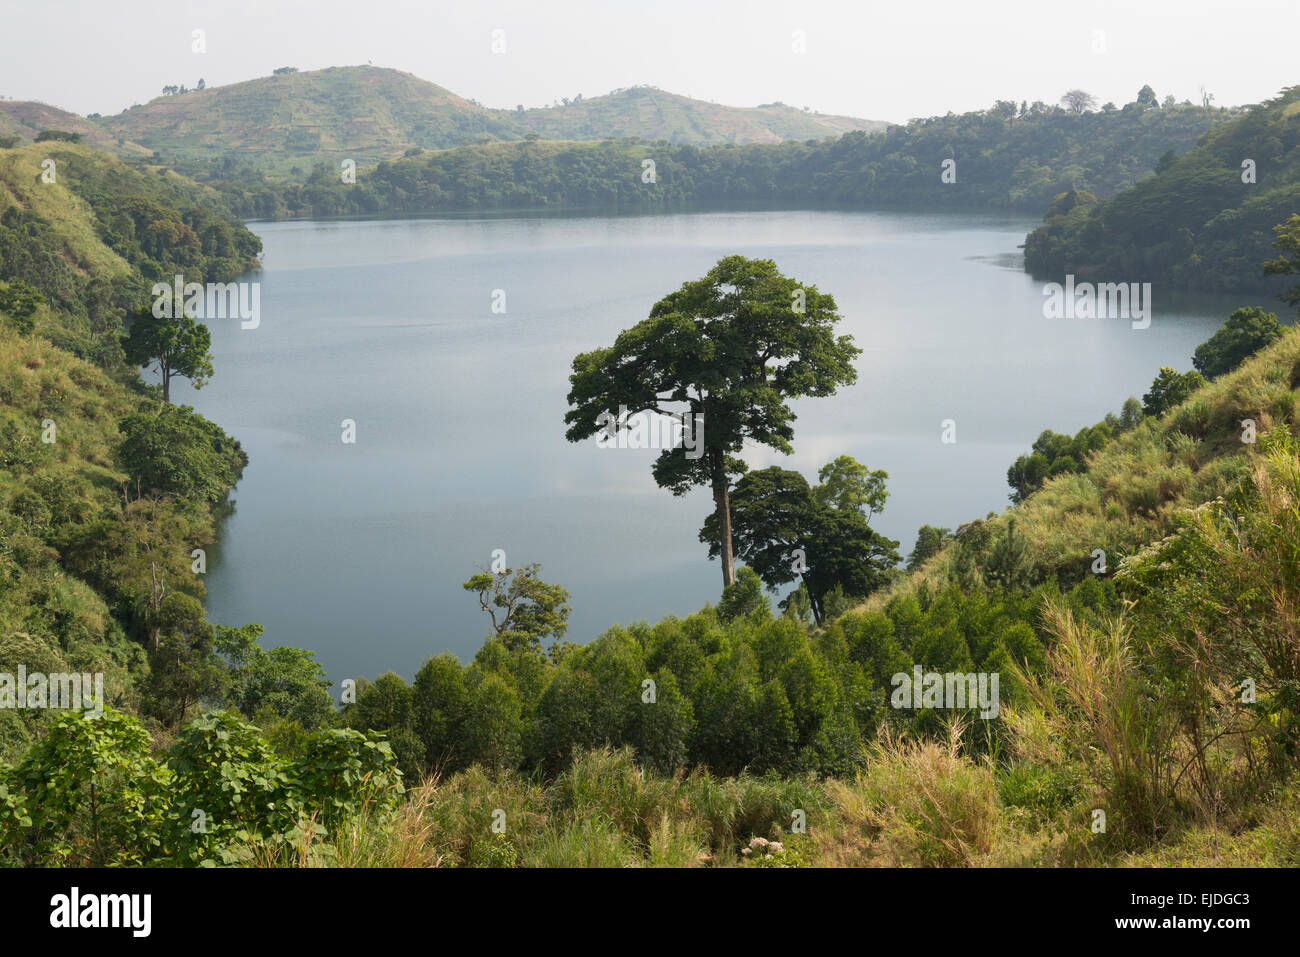 Crater lakes. Fort Portale area. Uganda. - Stock Image